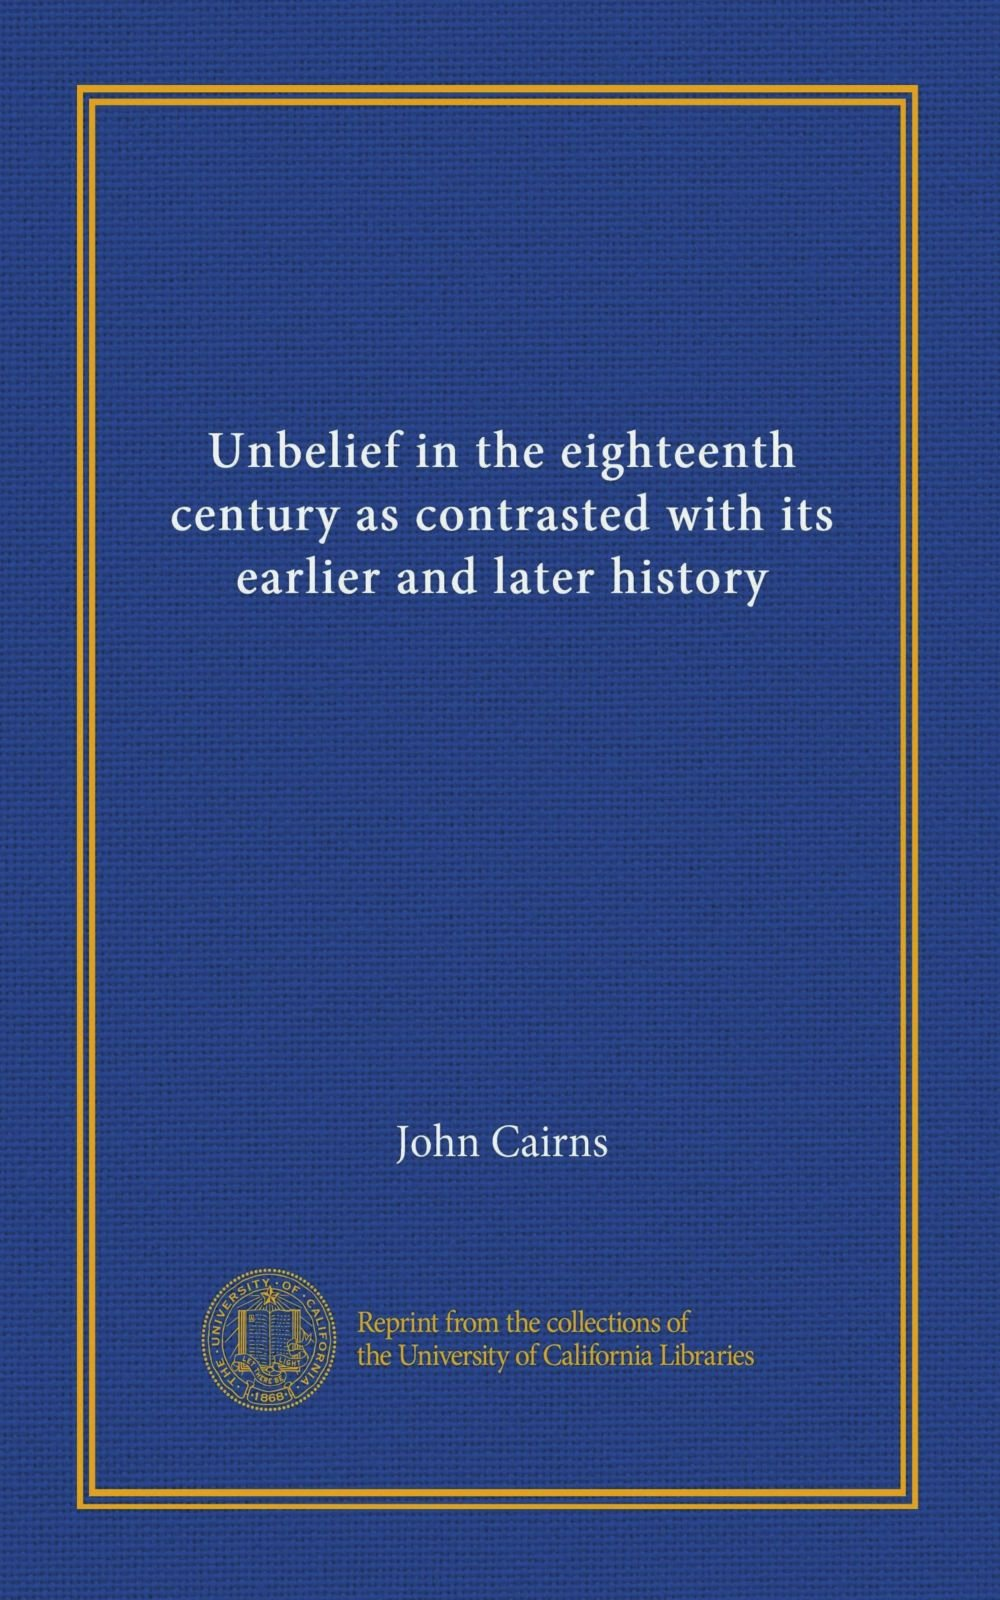 Unbelief in the eighteenth century as contrasted with its earlier and later history PDF